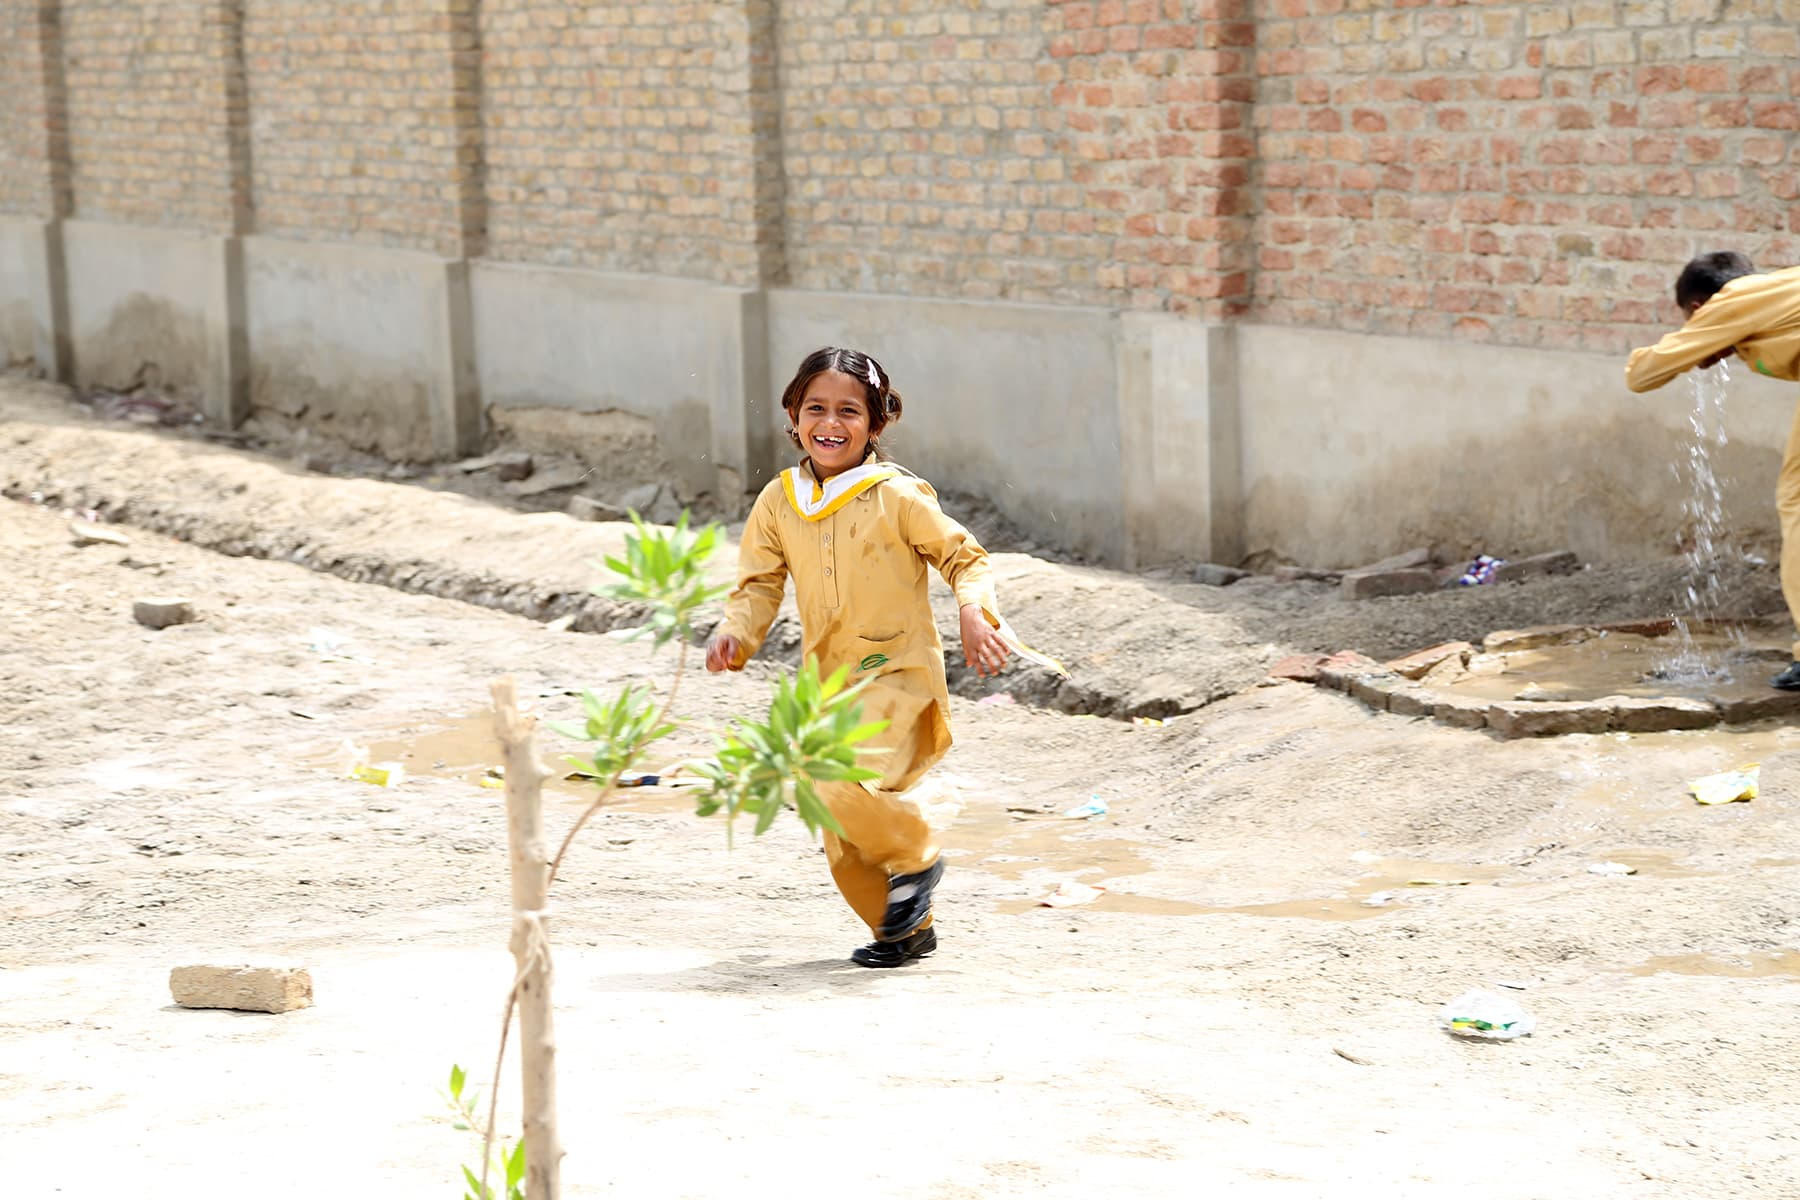 A young student smiles for the camera, she plays in the school ground during recess. - Photo by Mustafa Ilyas